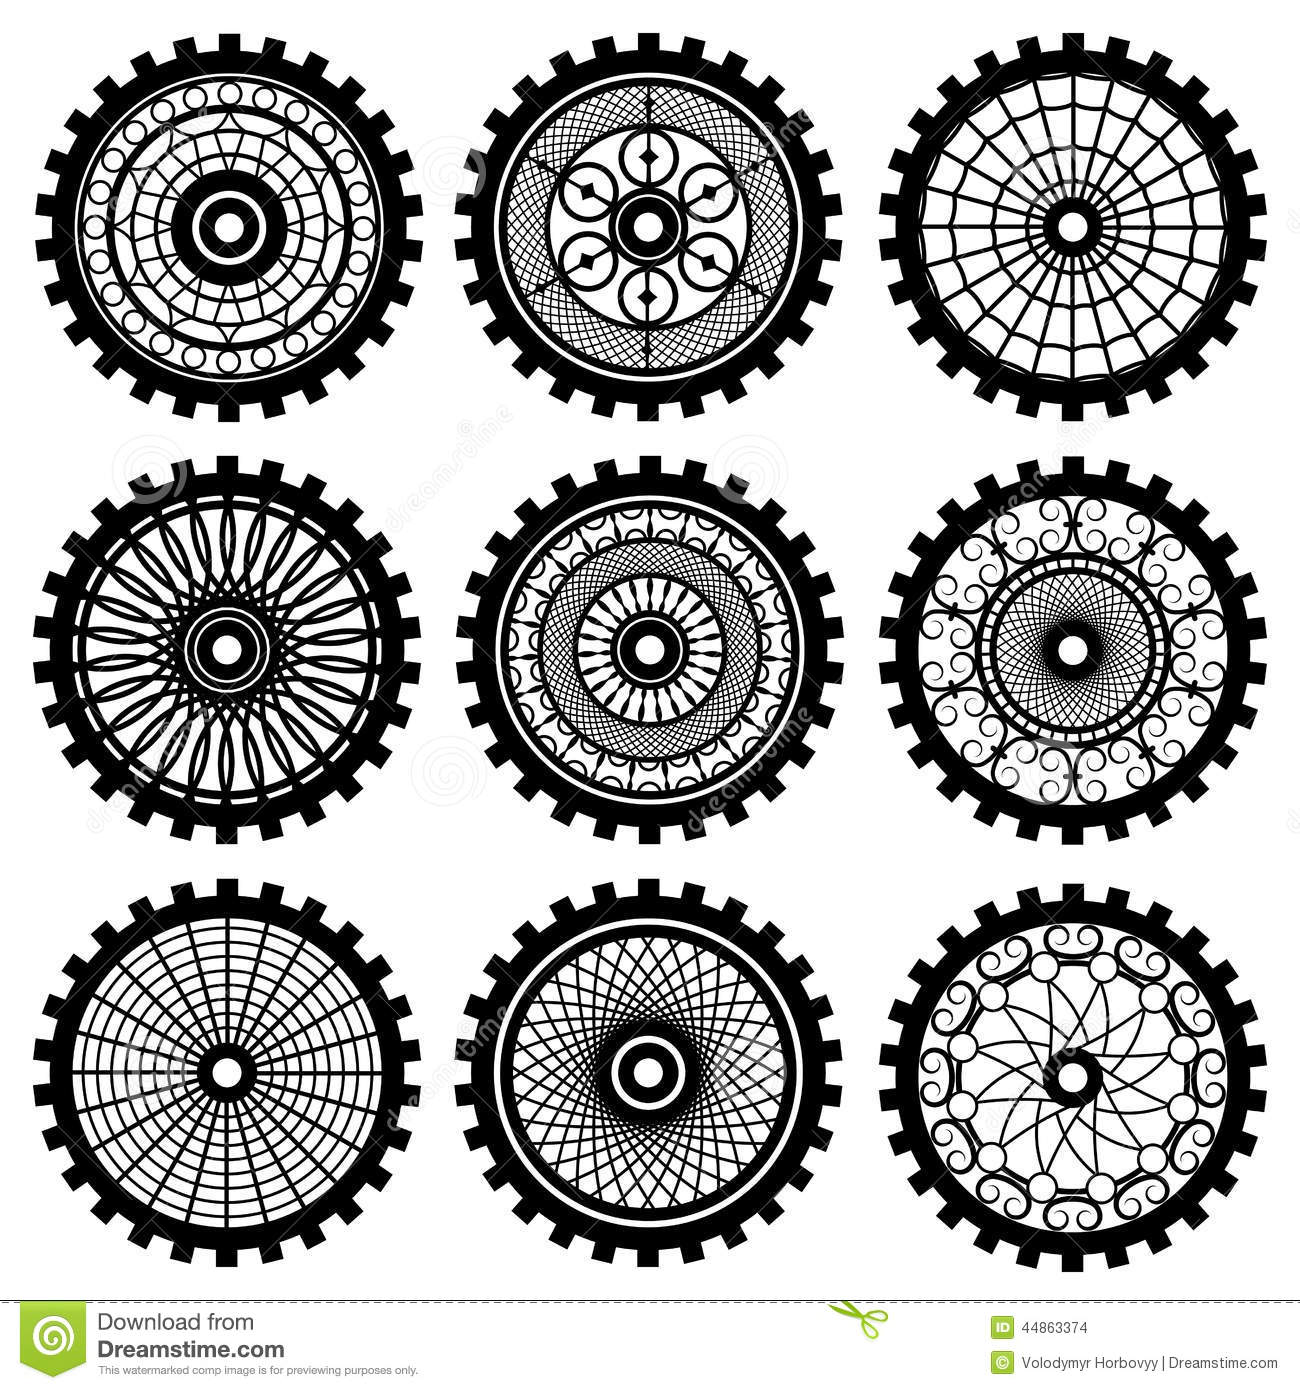 Drawn gears Drawings Search steampunk Steampunk Search